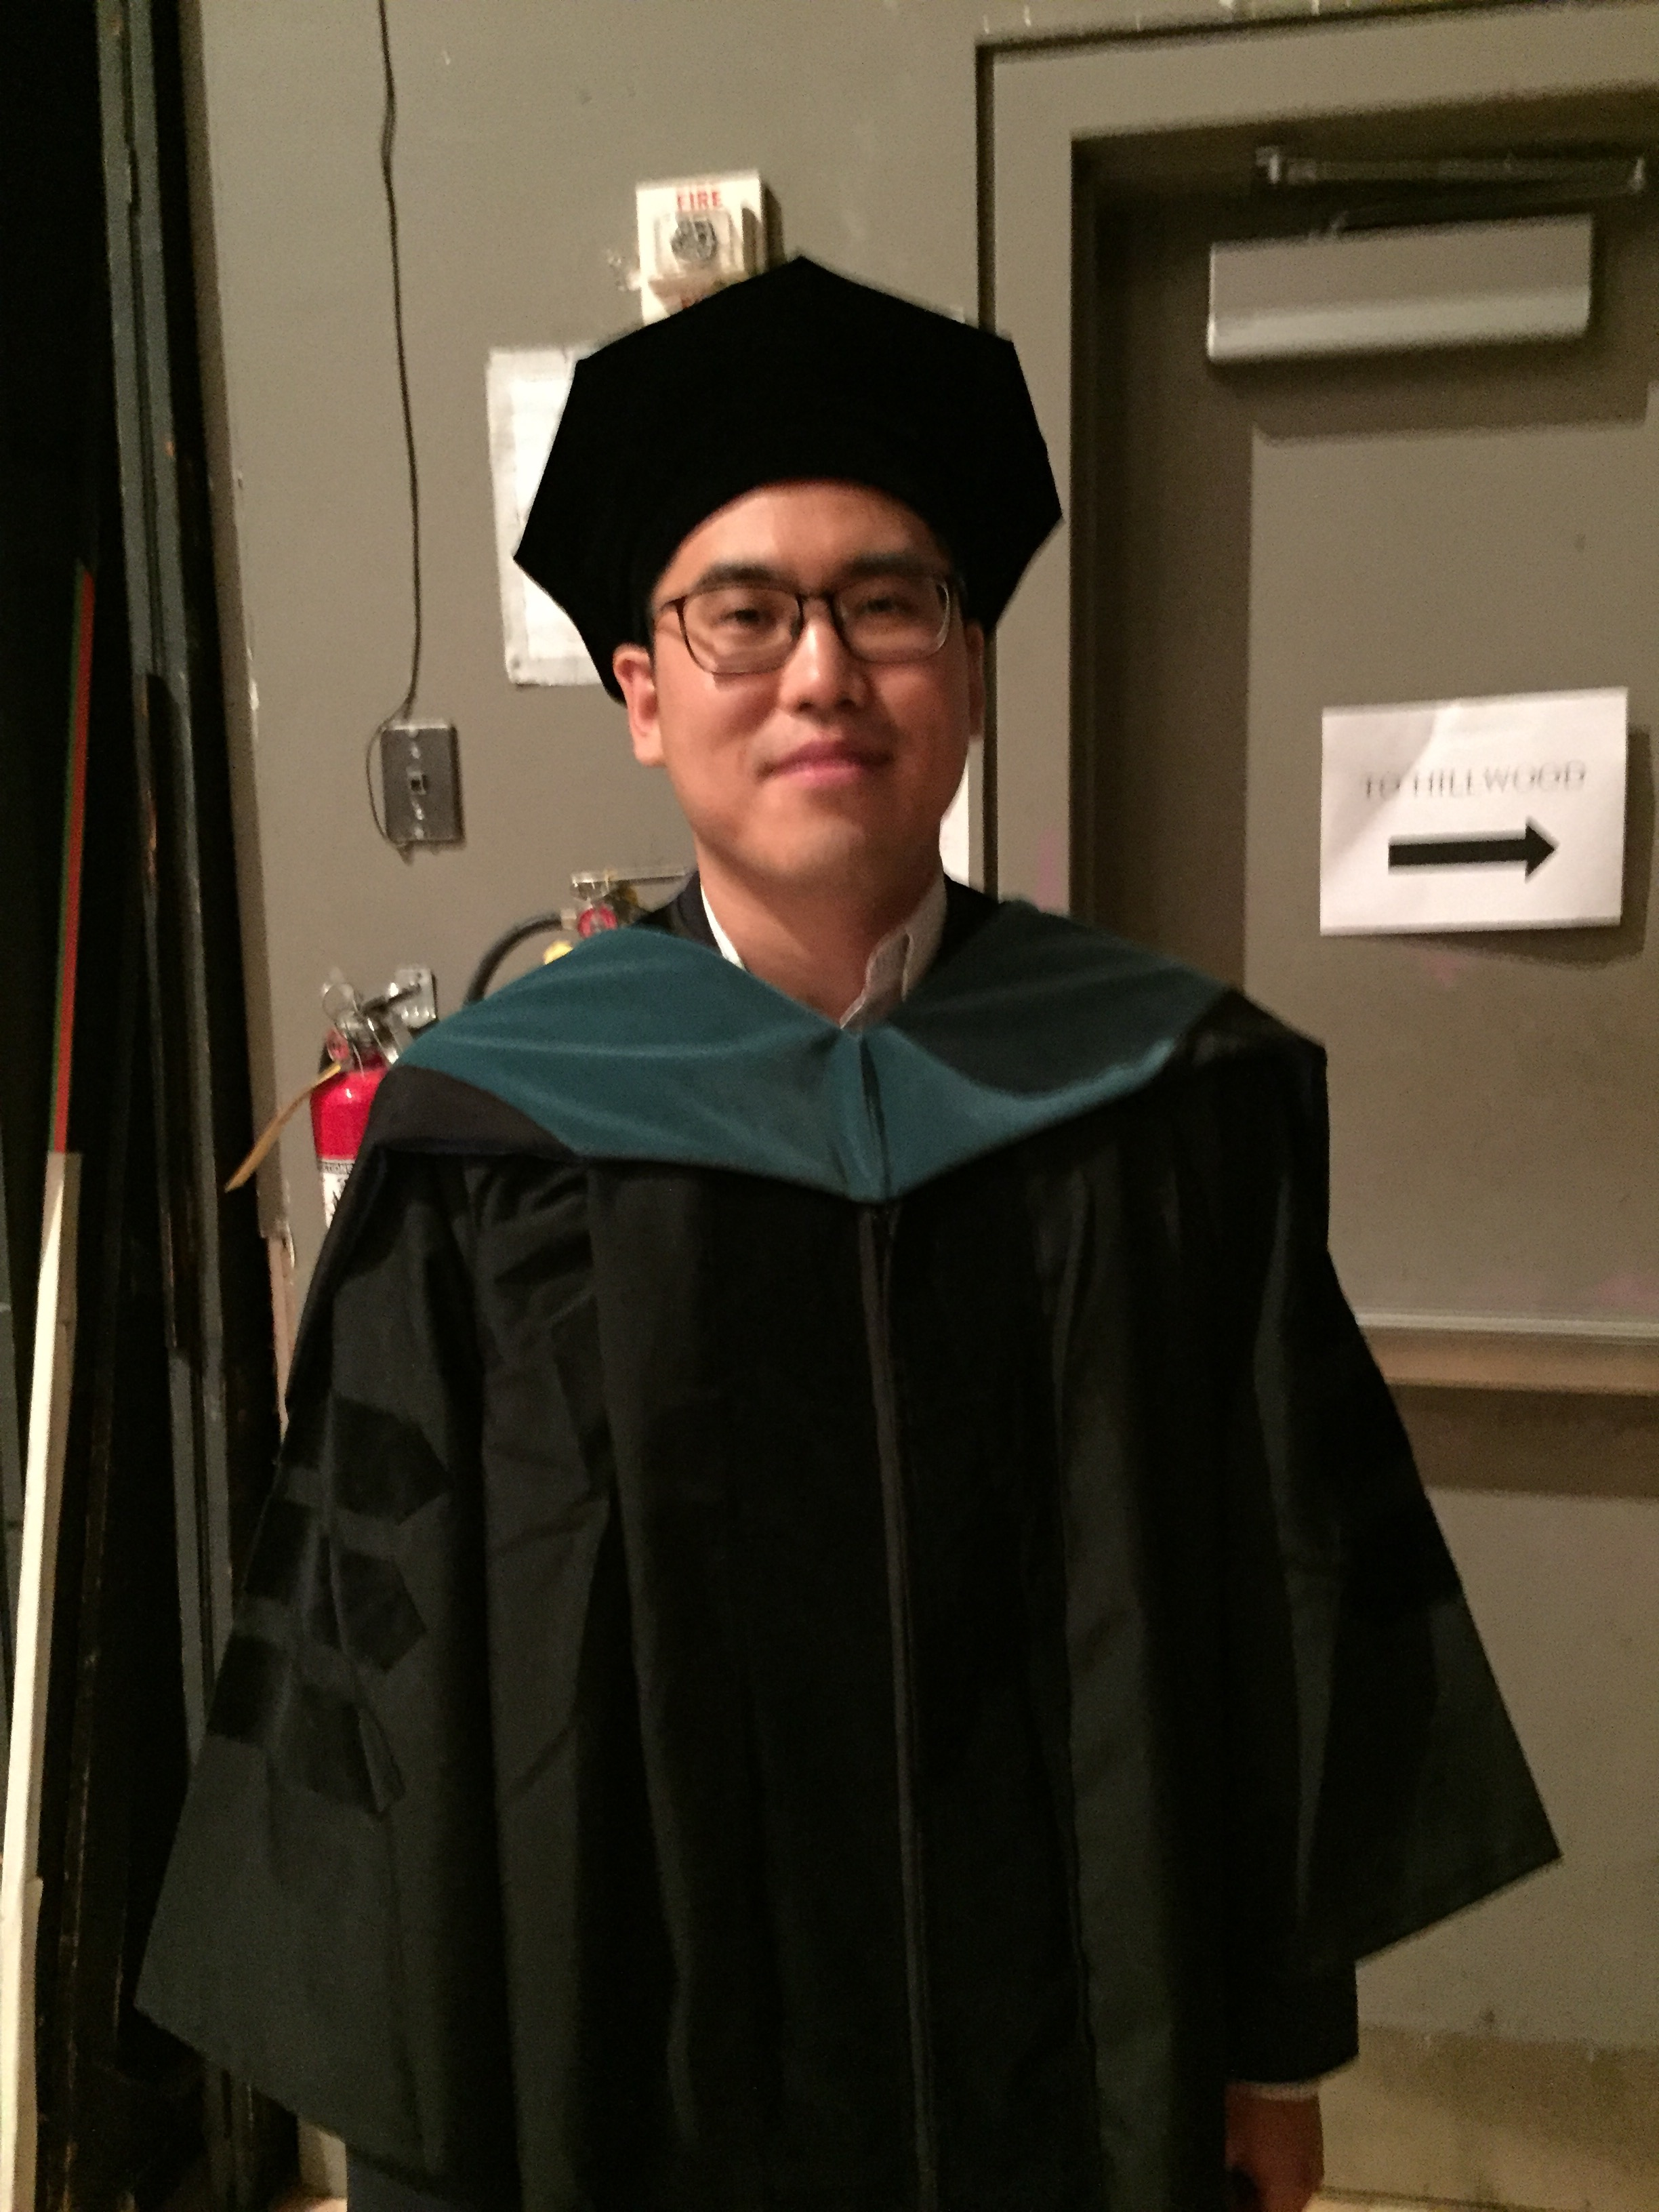 Joshua Park, class of 2016, graduate of the School of Health Sciences Doctor of Physical Therapy Program